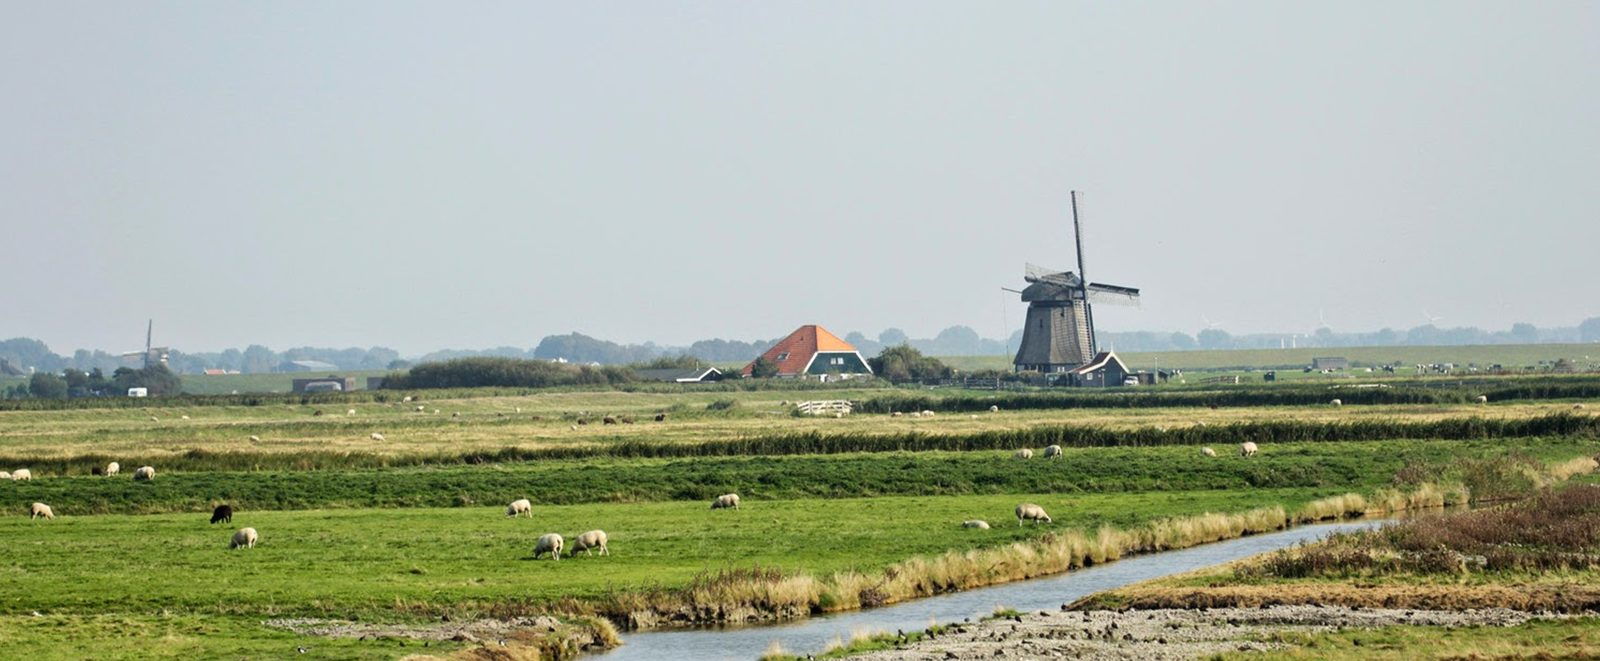 Groepsaccommodaties in Flevoland